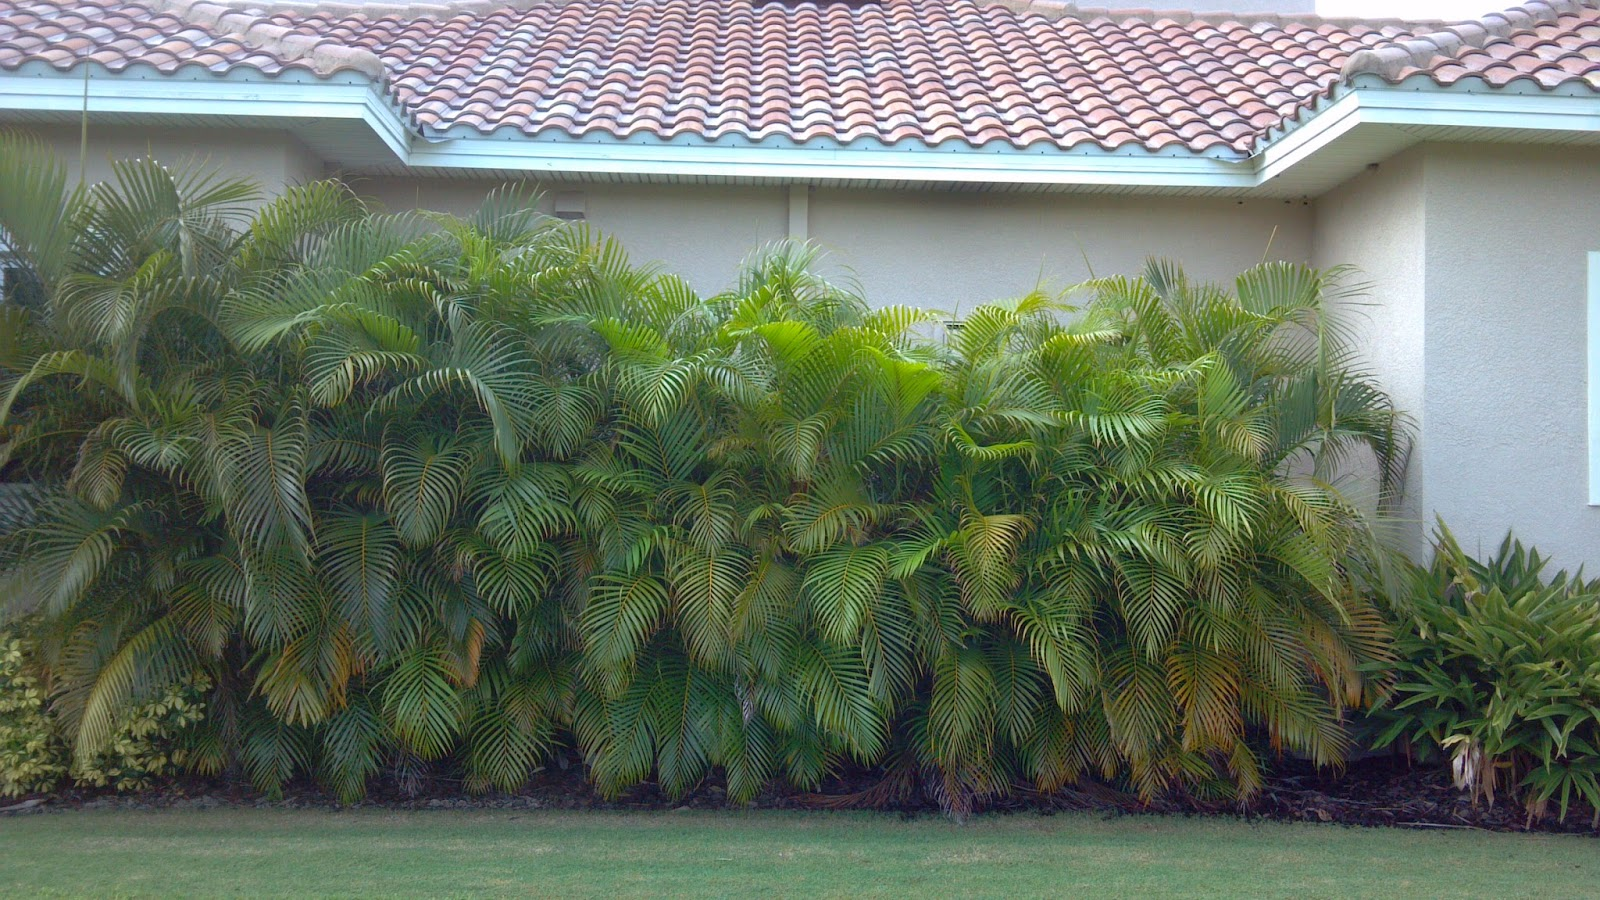 Dypsis Lutescens Useful Tropical Plants A Quality Plant Areca Palm Used As A Screen Wholesale